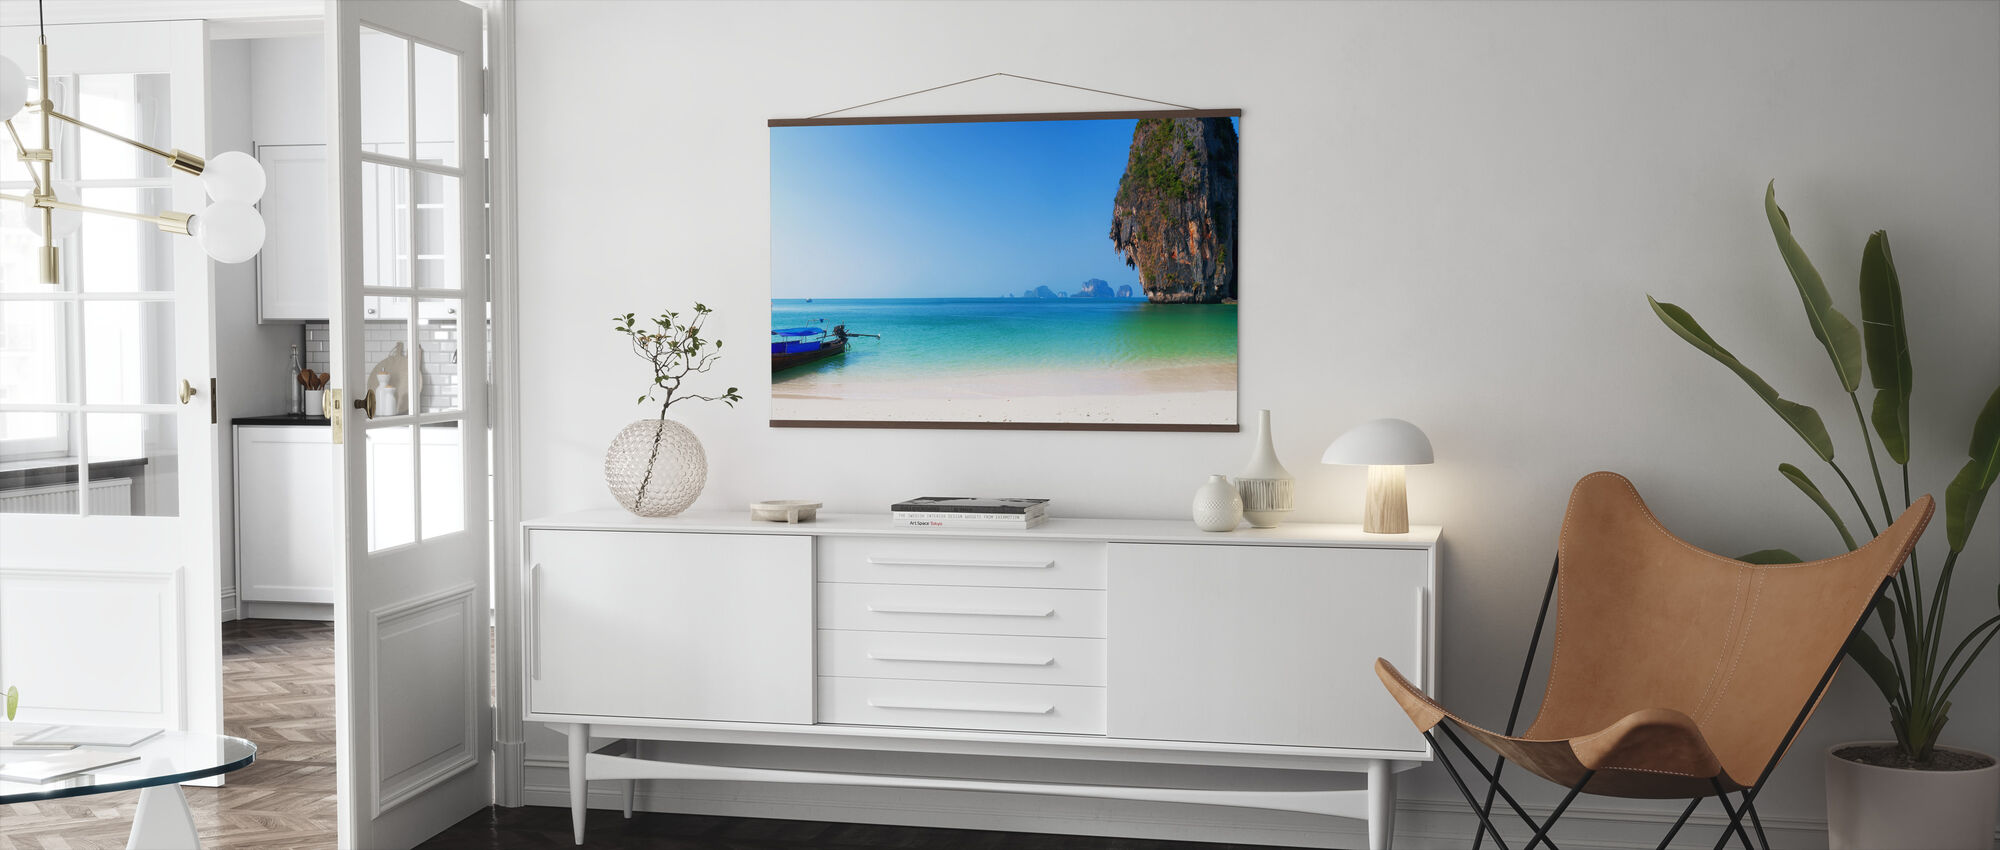 Thailand Island Beach - Poster - Living Room